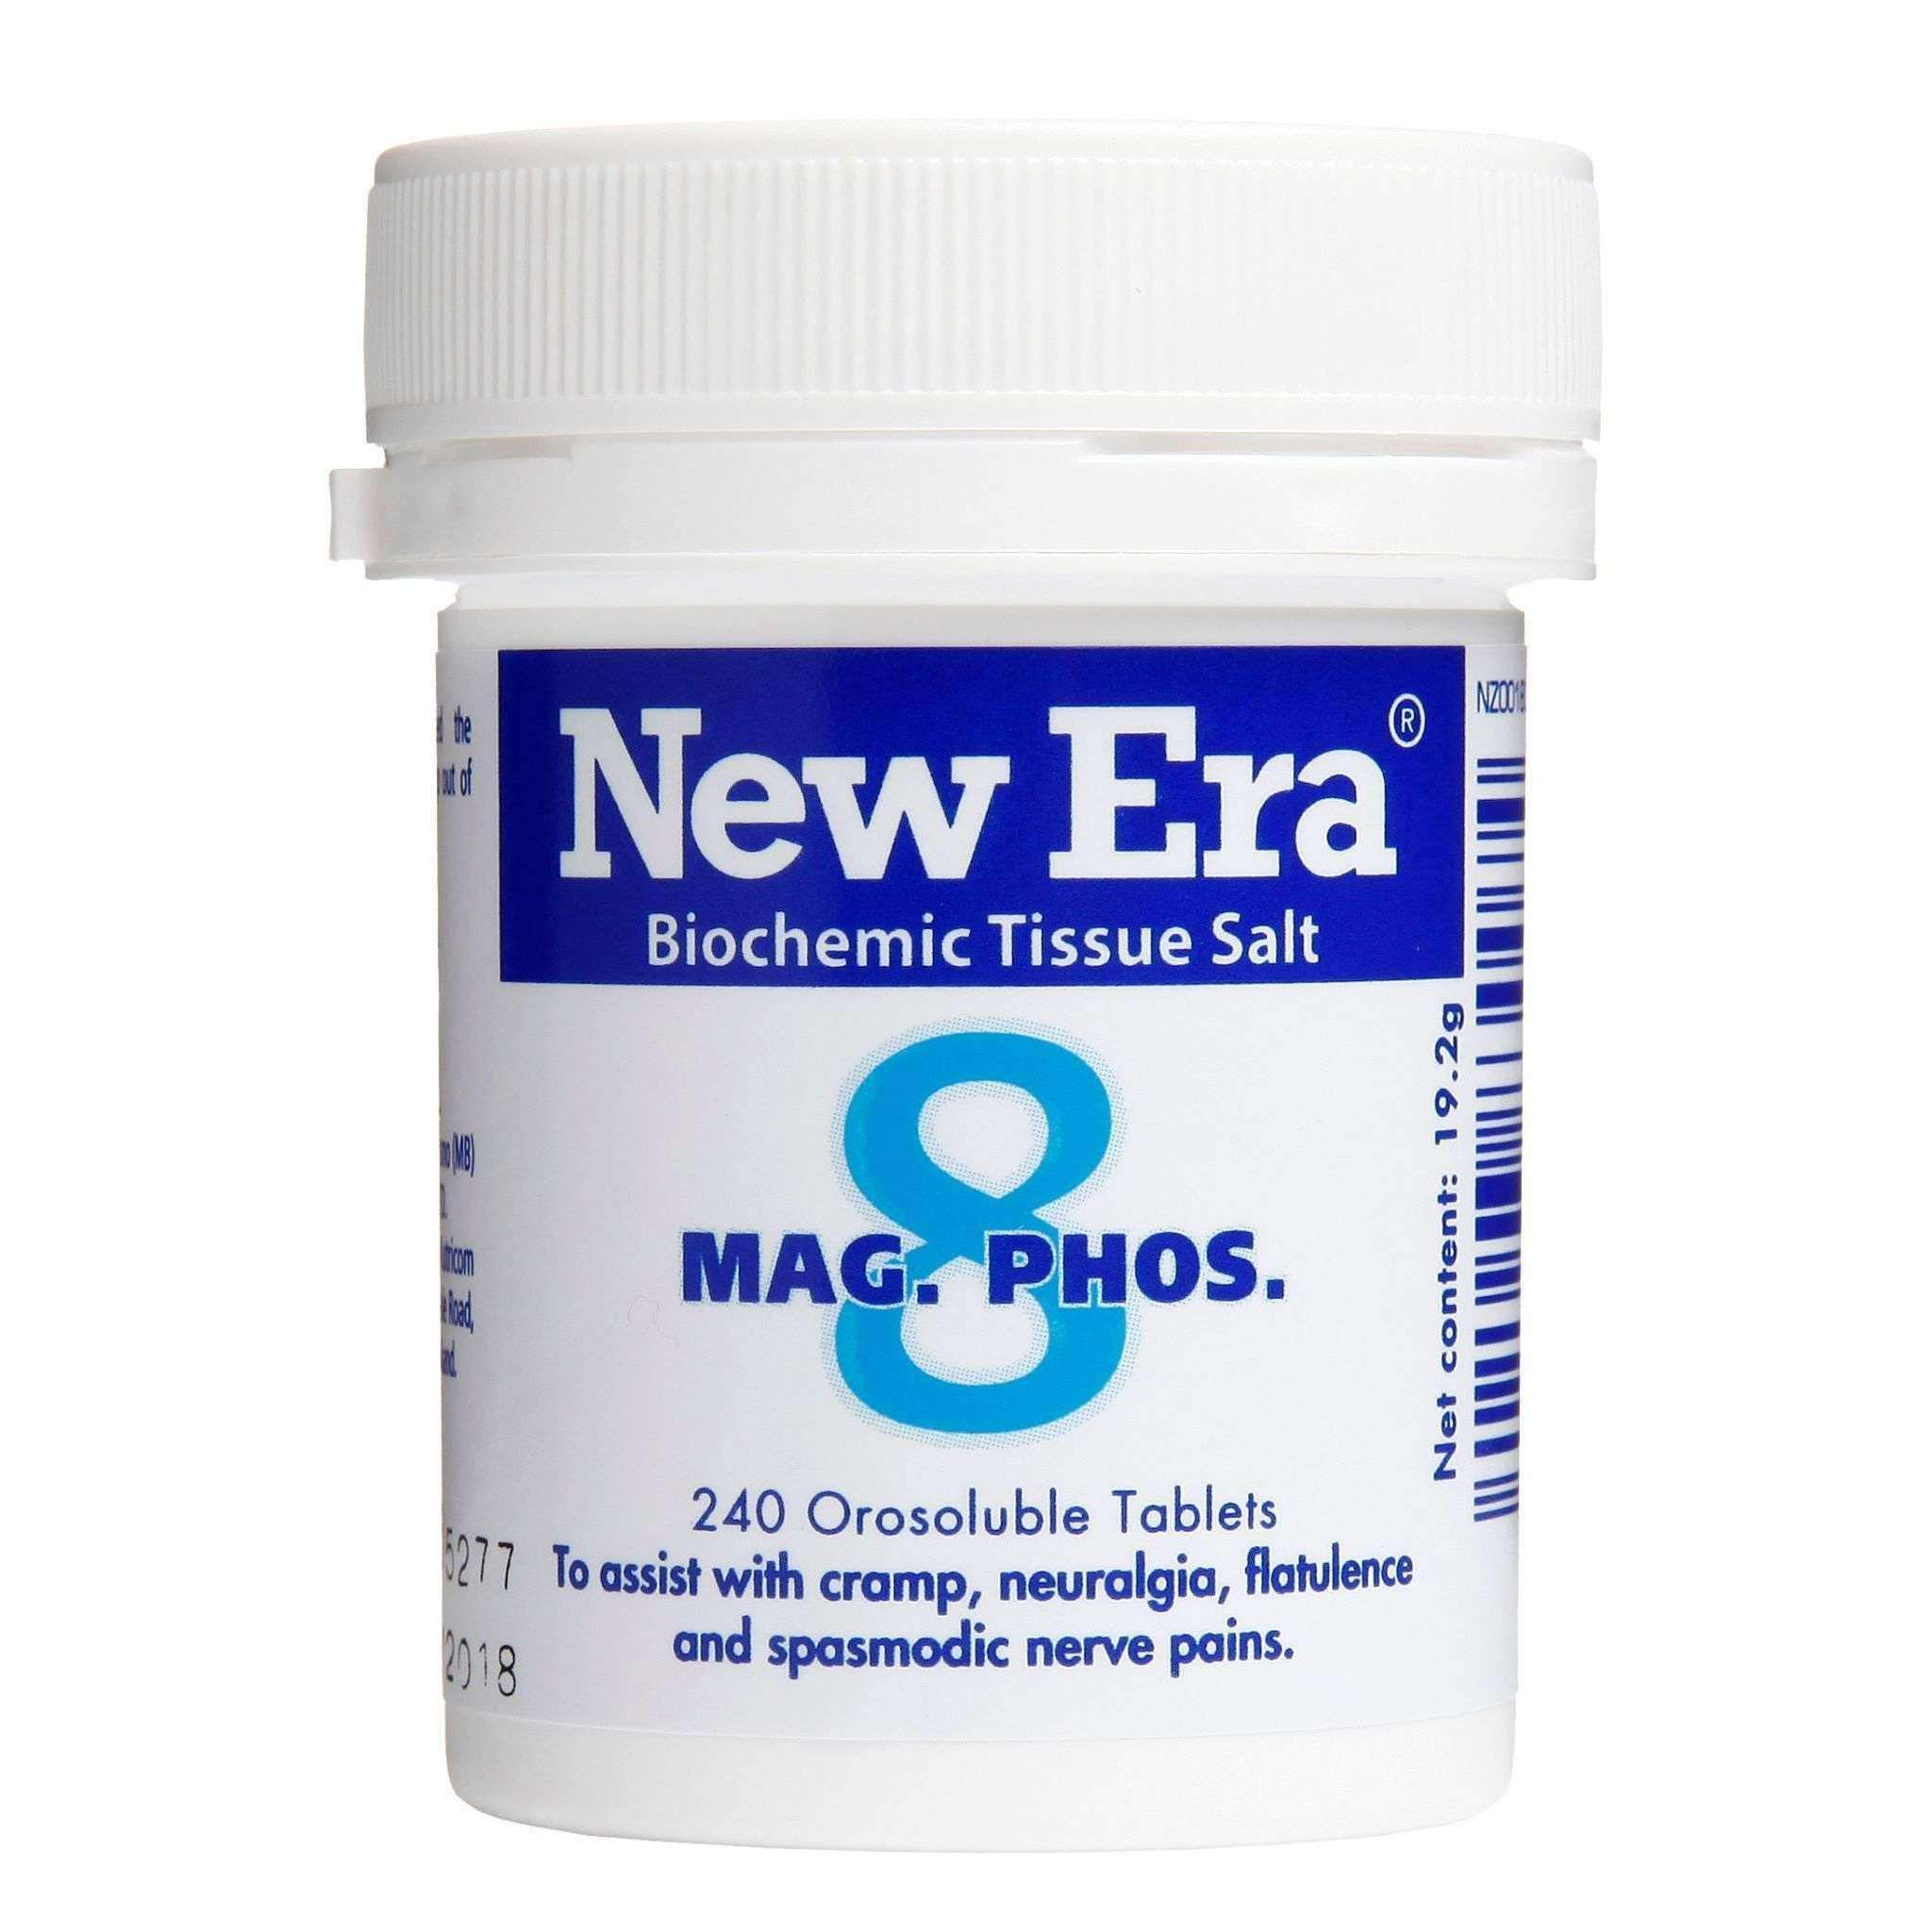 New Era New Era No.8 Mag Phos - The Muscle Nutrient.